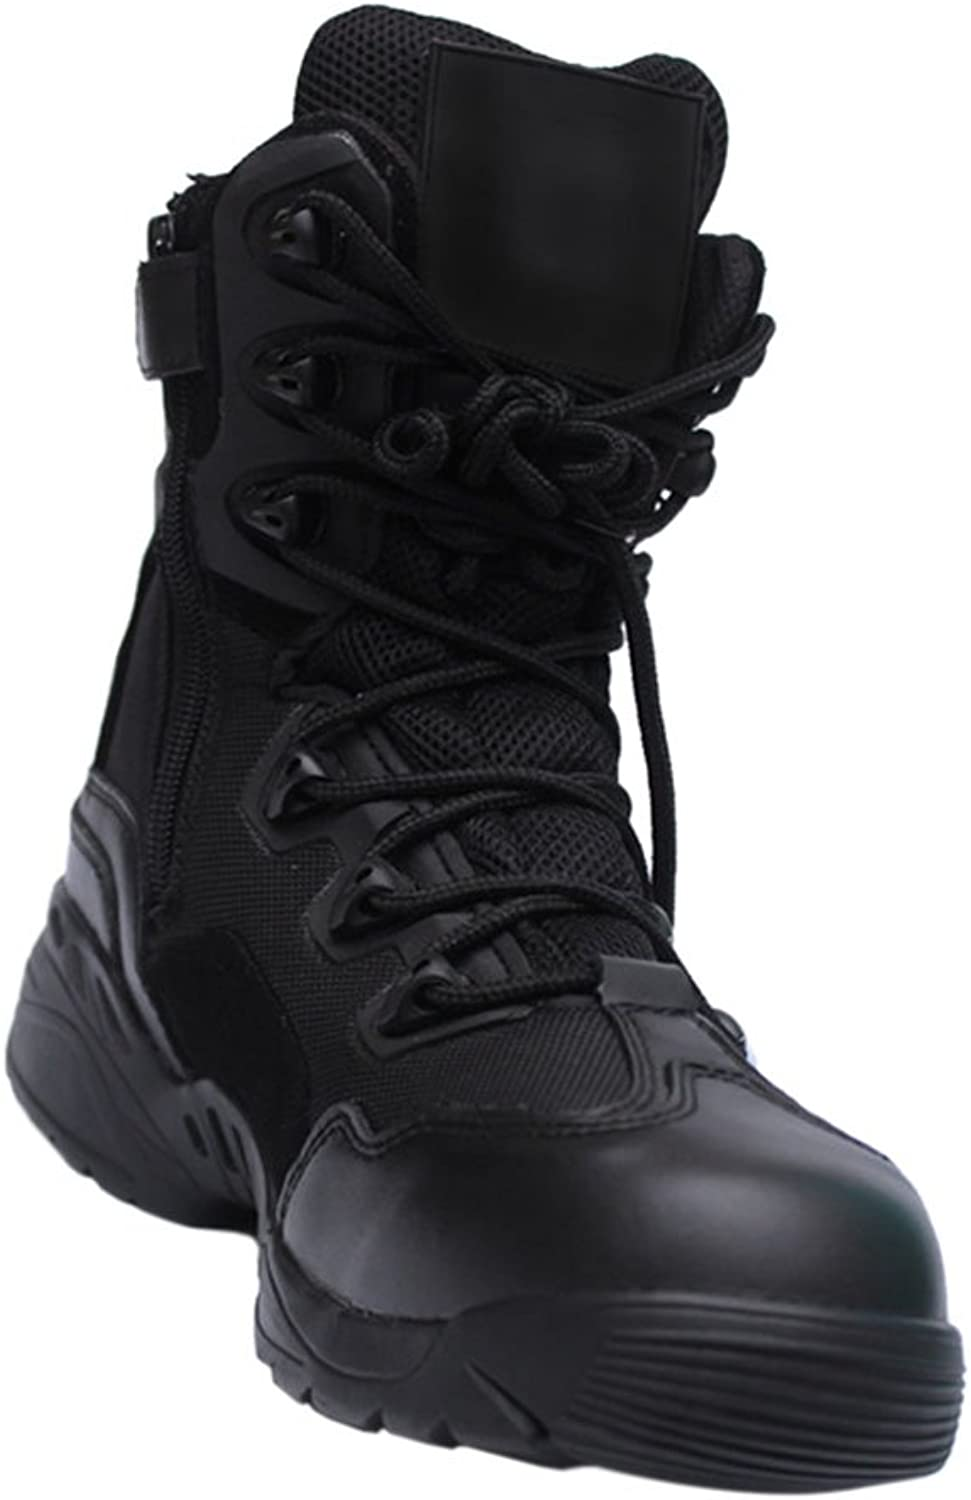 Deylaying Fashion Desert Army Combat Patrol Boots Tactical Cadet Military Security Work shoes